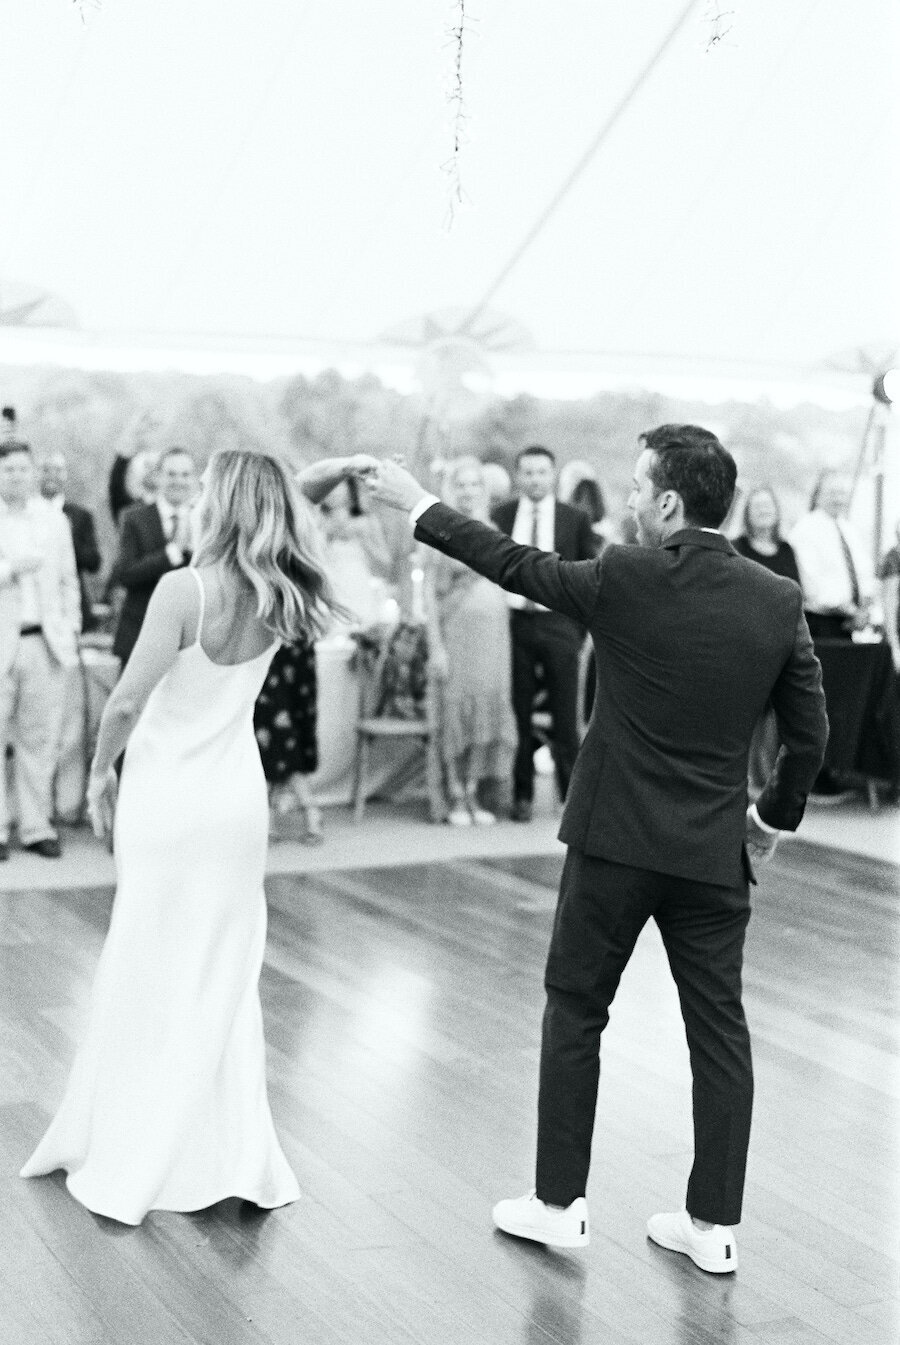 Black and White Wedding Photographer First Dance Robert Aveau for © Bonnie Sen Photography